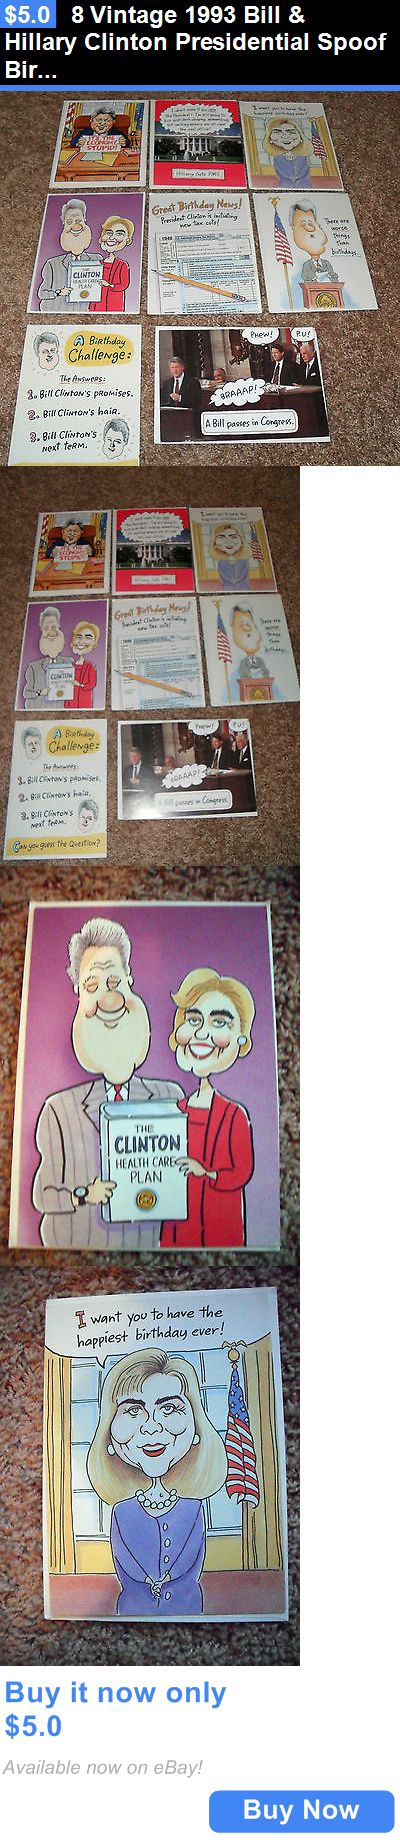 Bill Clinton: 8 Vintage 1993 Bill And Hillary Clinton Presidential Spoof Birthday Cards-Unused BUY IT NOW ONLY: $5.0